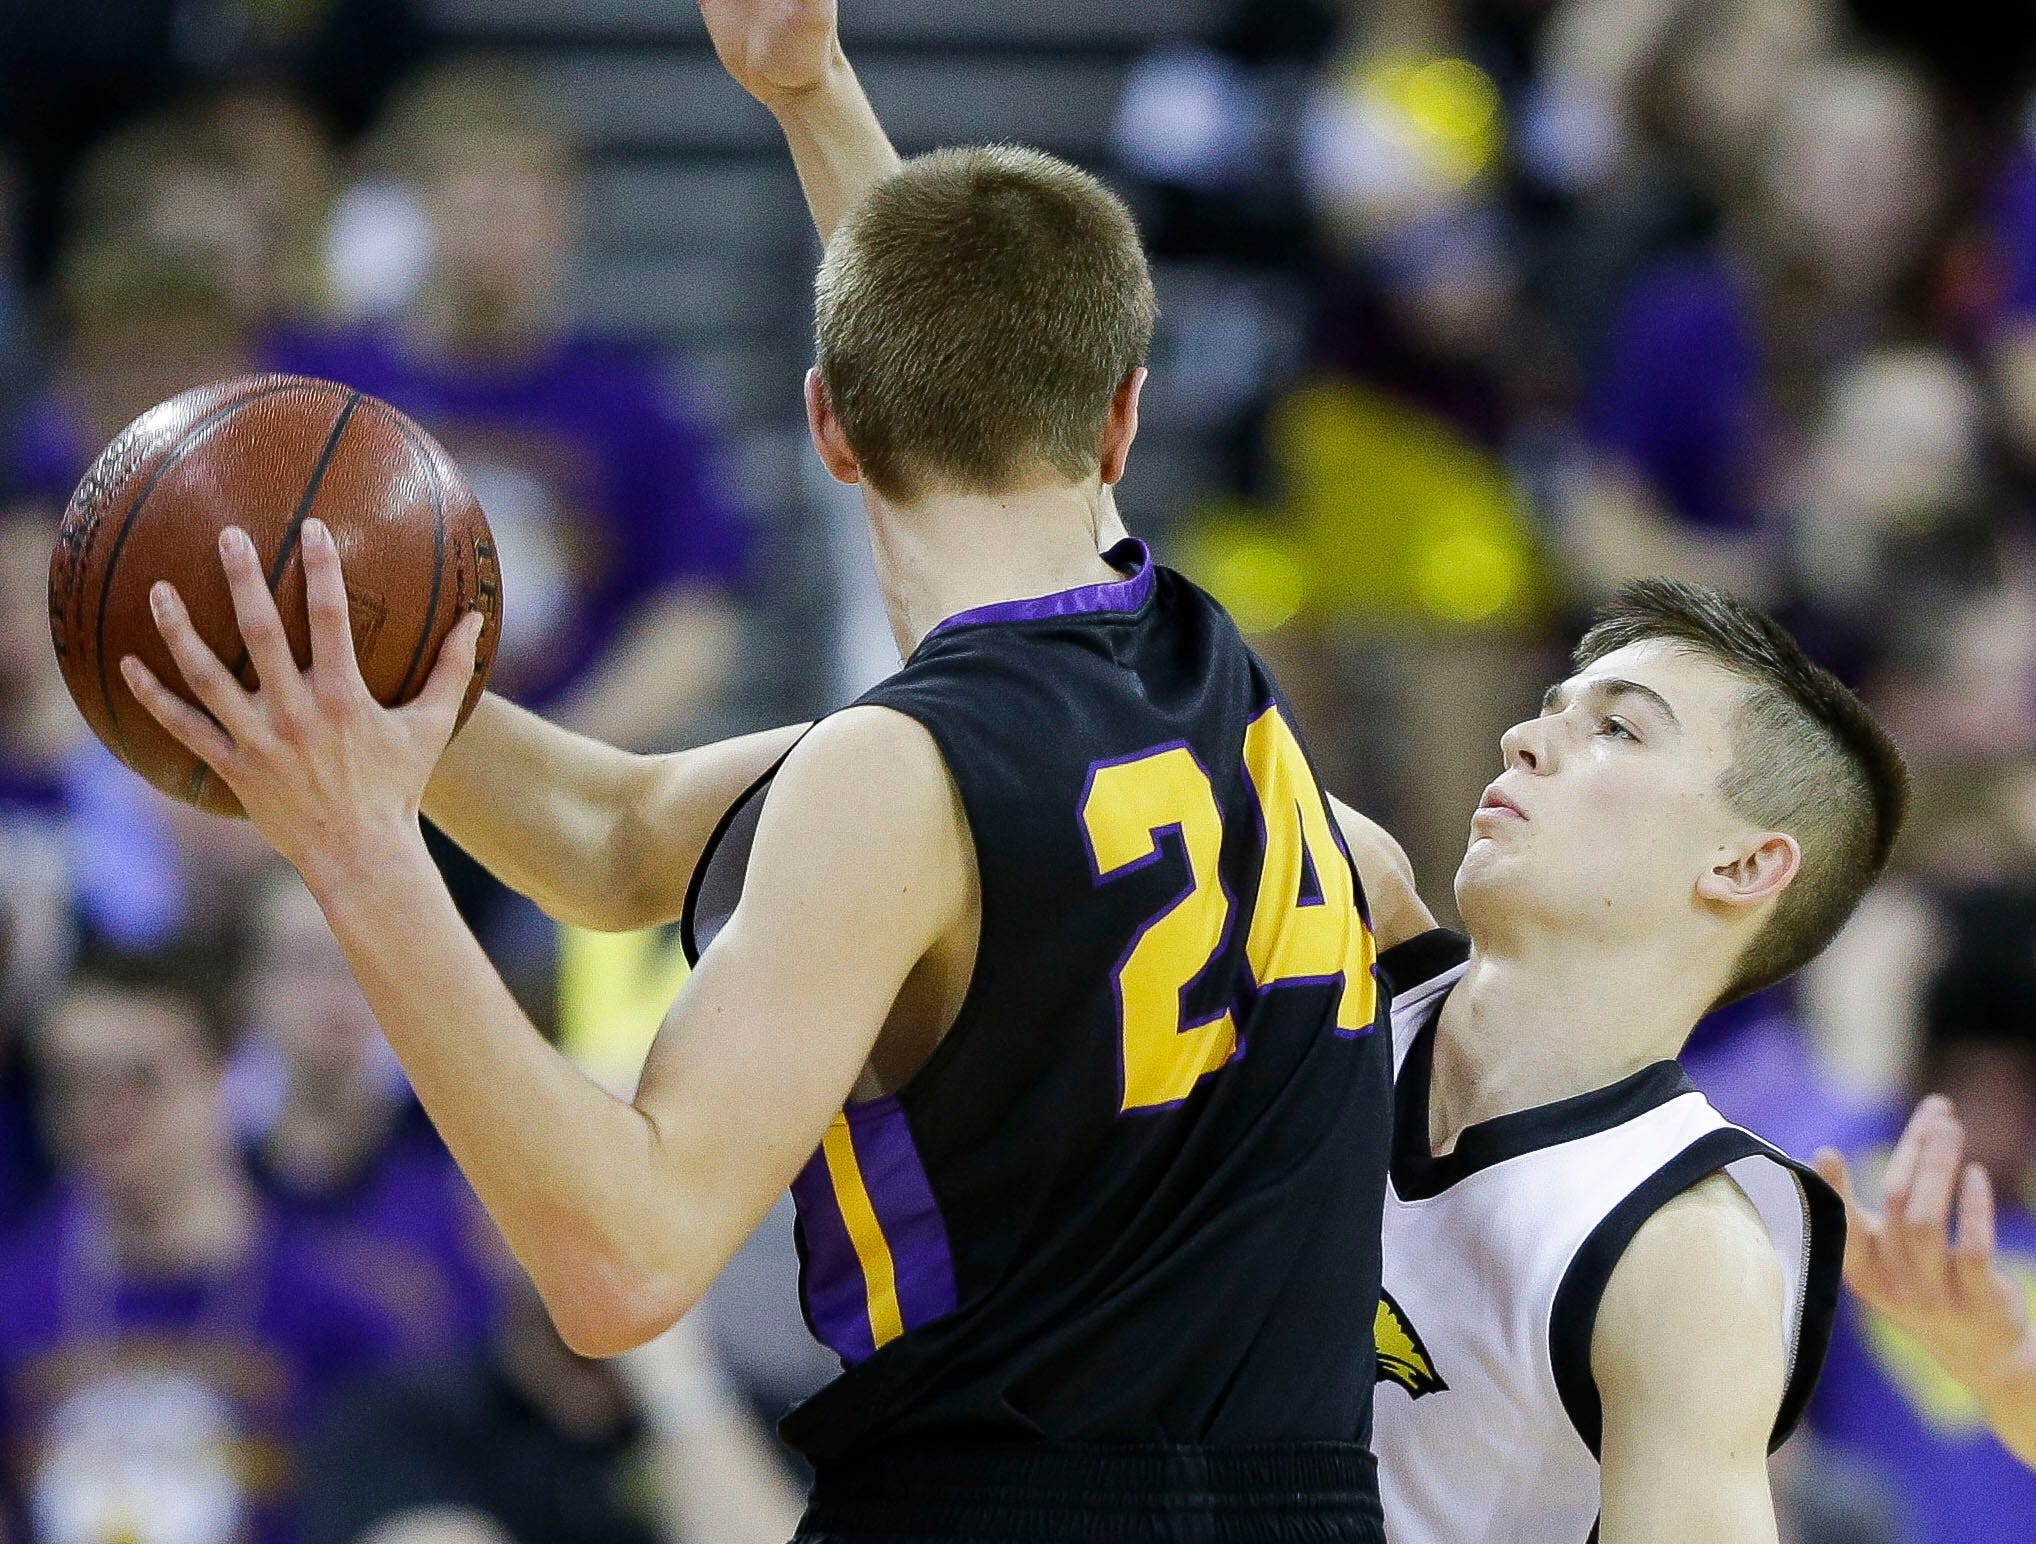 Waupun High School's Gabe Keach (21) defends Denmark High School's Zachary Gezella (24) in a Division 3 boys basketball state semifinal on Thursday, March 14, 2019, at the Kohl Center in Madison, Wis.